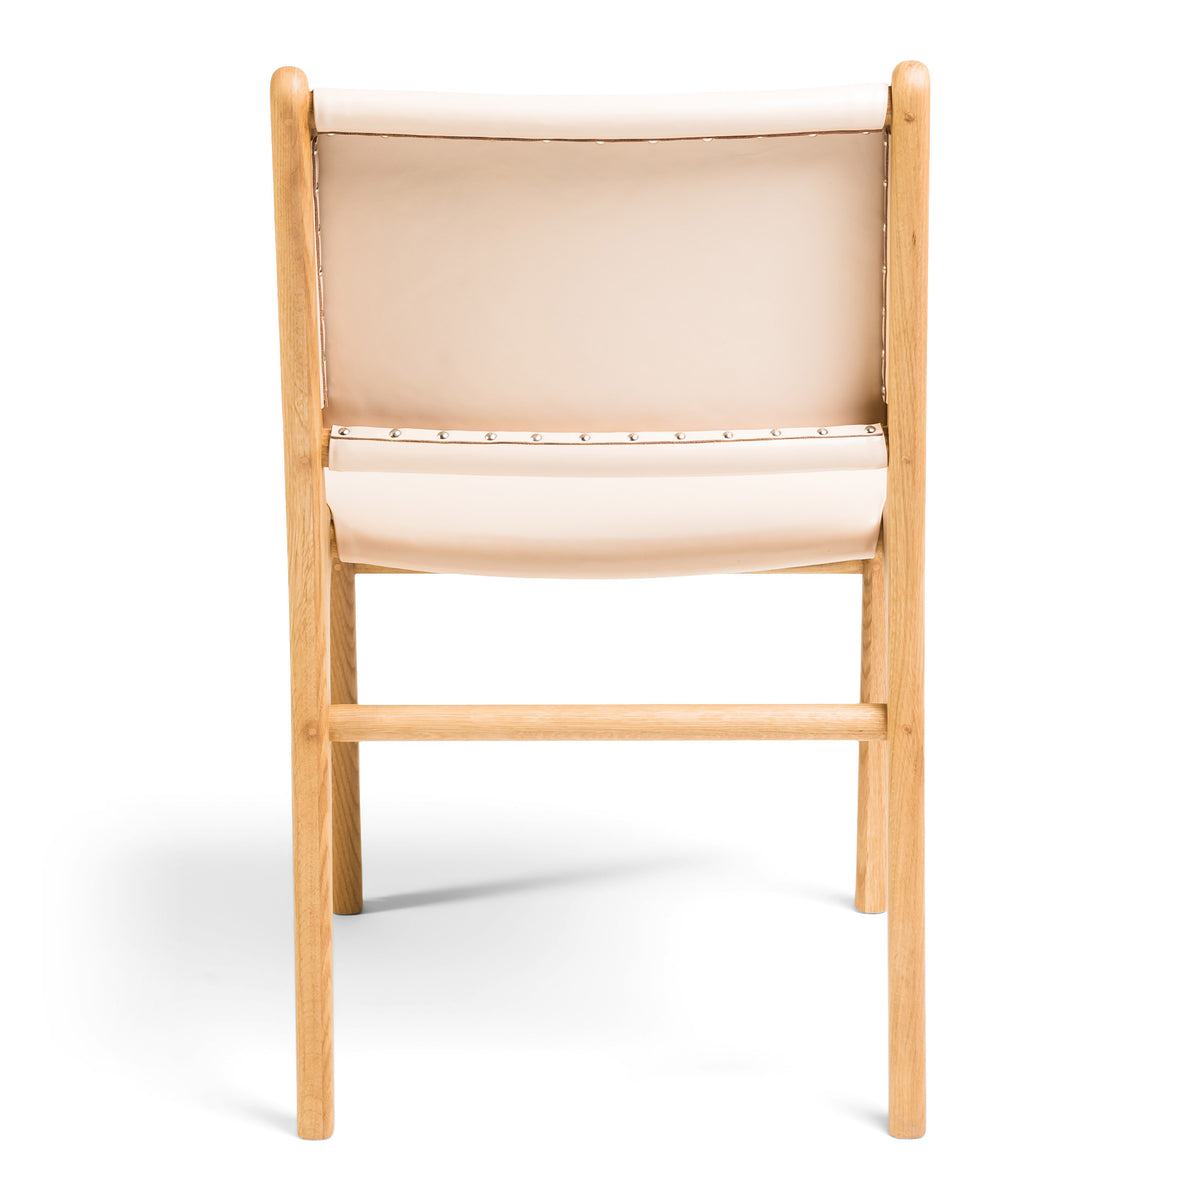 Spensley Dining Chair Oak - Rose Blush